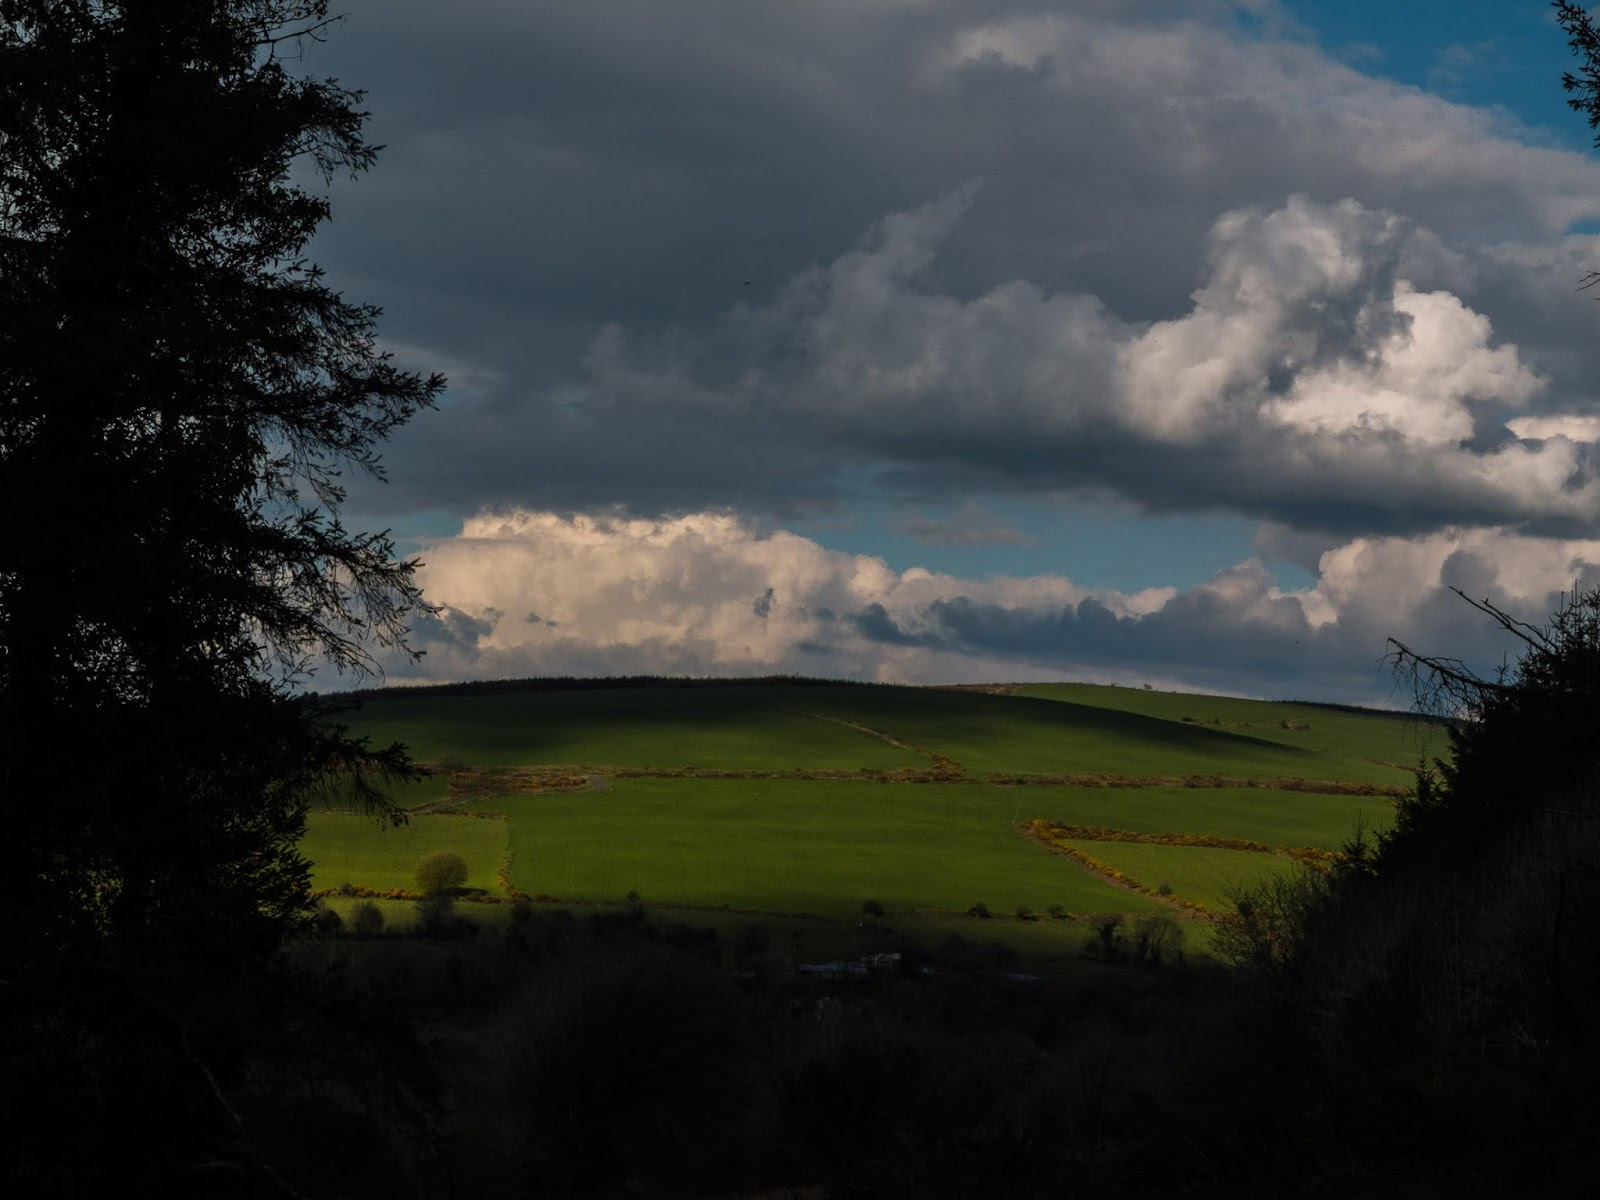 Clouds casting shadows on a hillside and mountain top in North Cork.